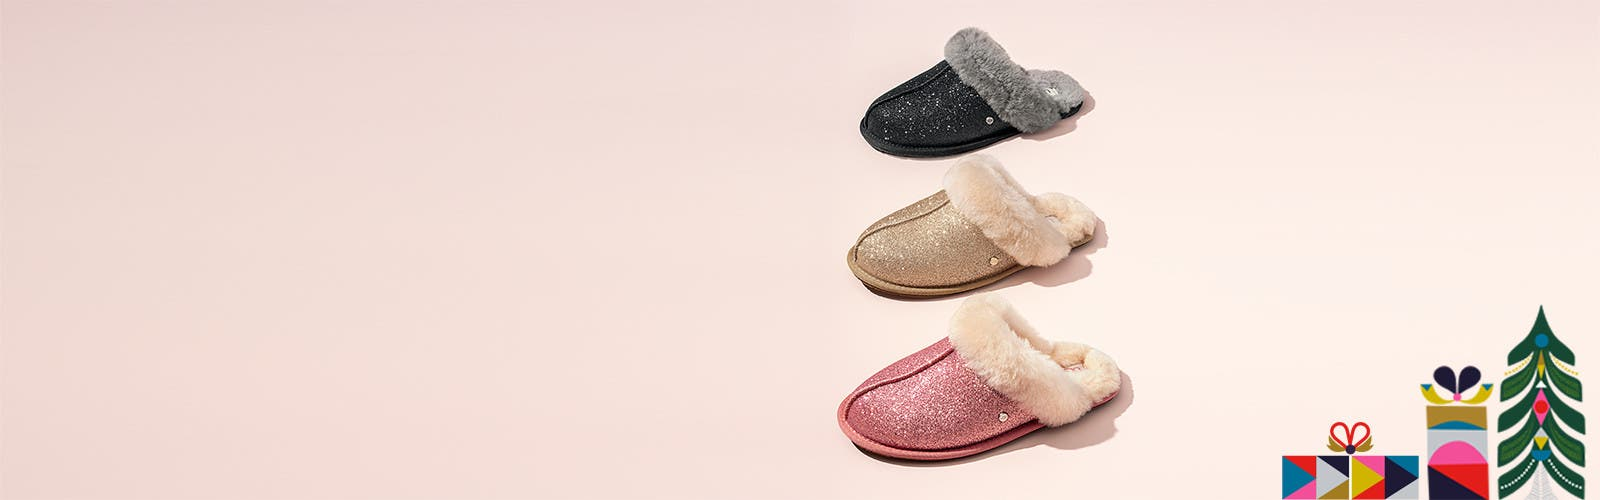 UGG styles for women, men and kids.